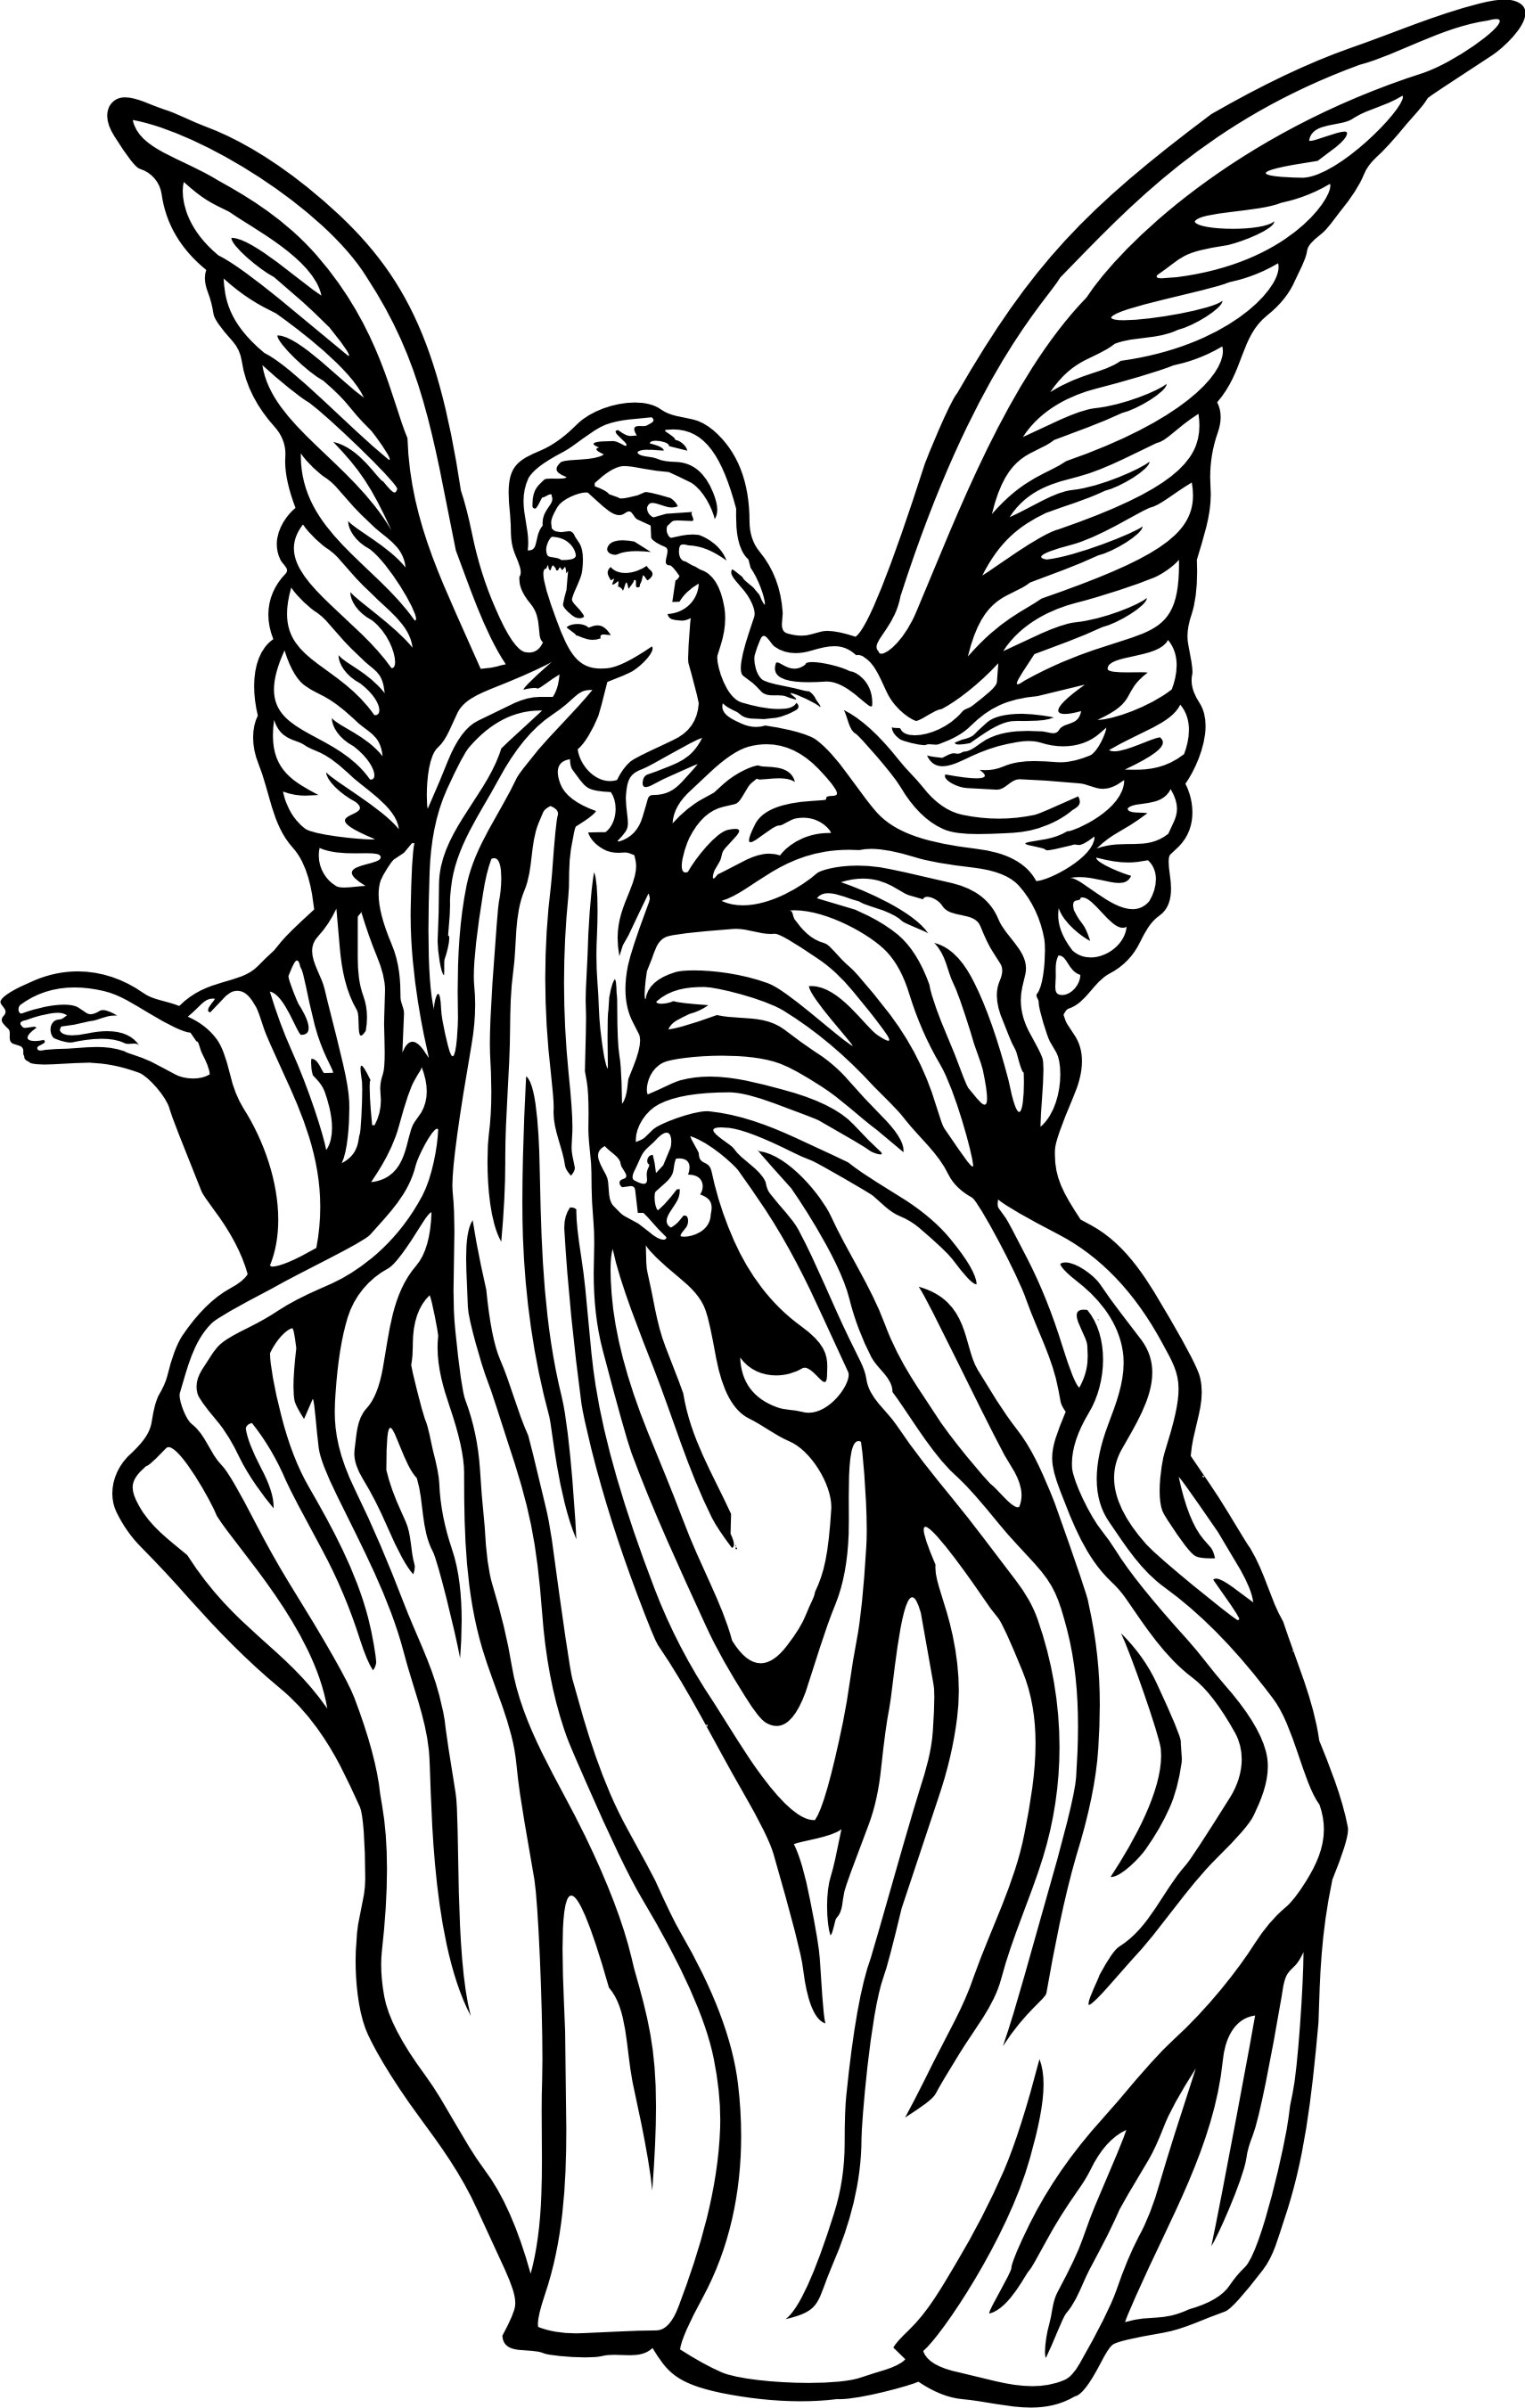 Angel clipart drawing picture royalty free stock Guardian Angels Drawings Angel Clipart Guardian Angel – Pencil And ... picture royalty free stock